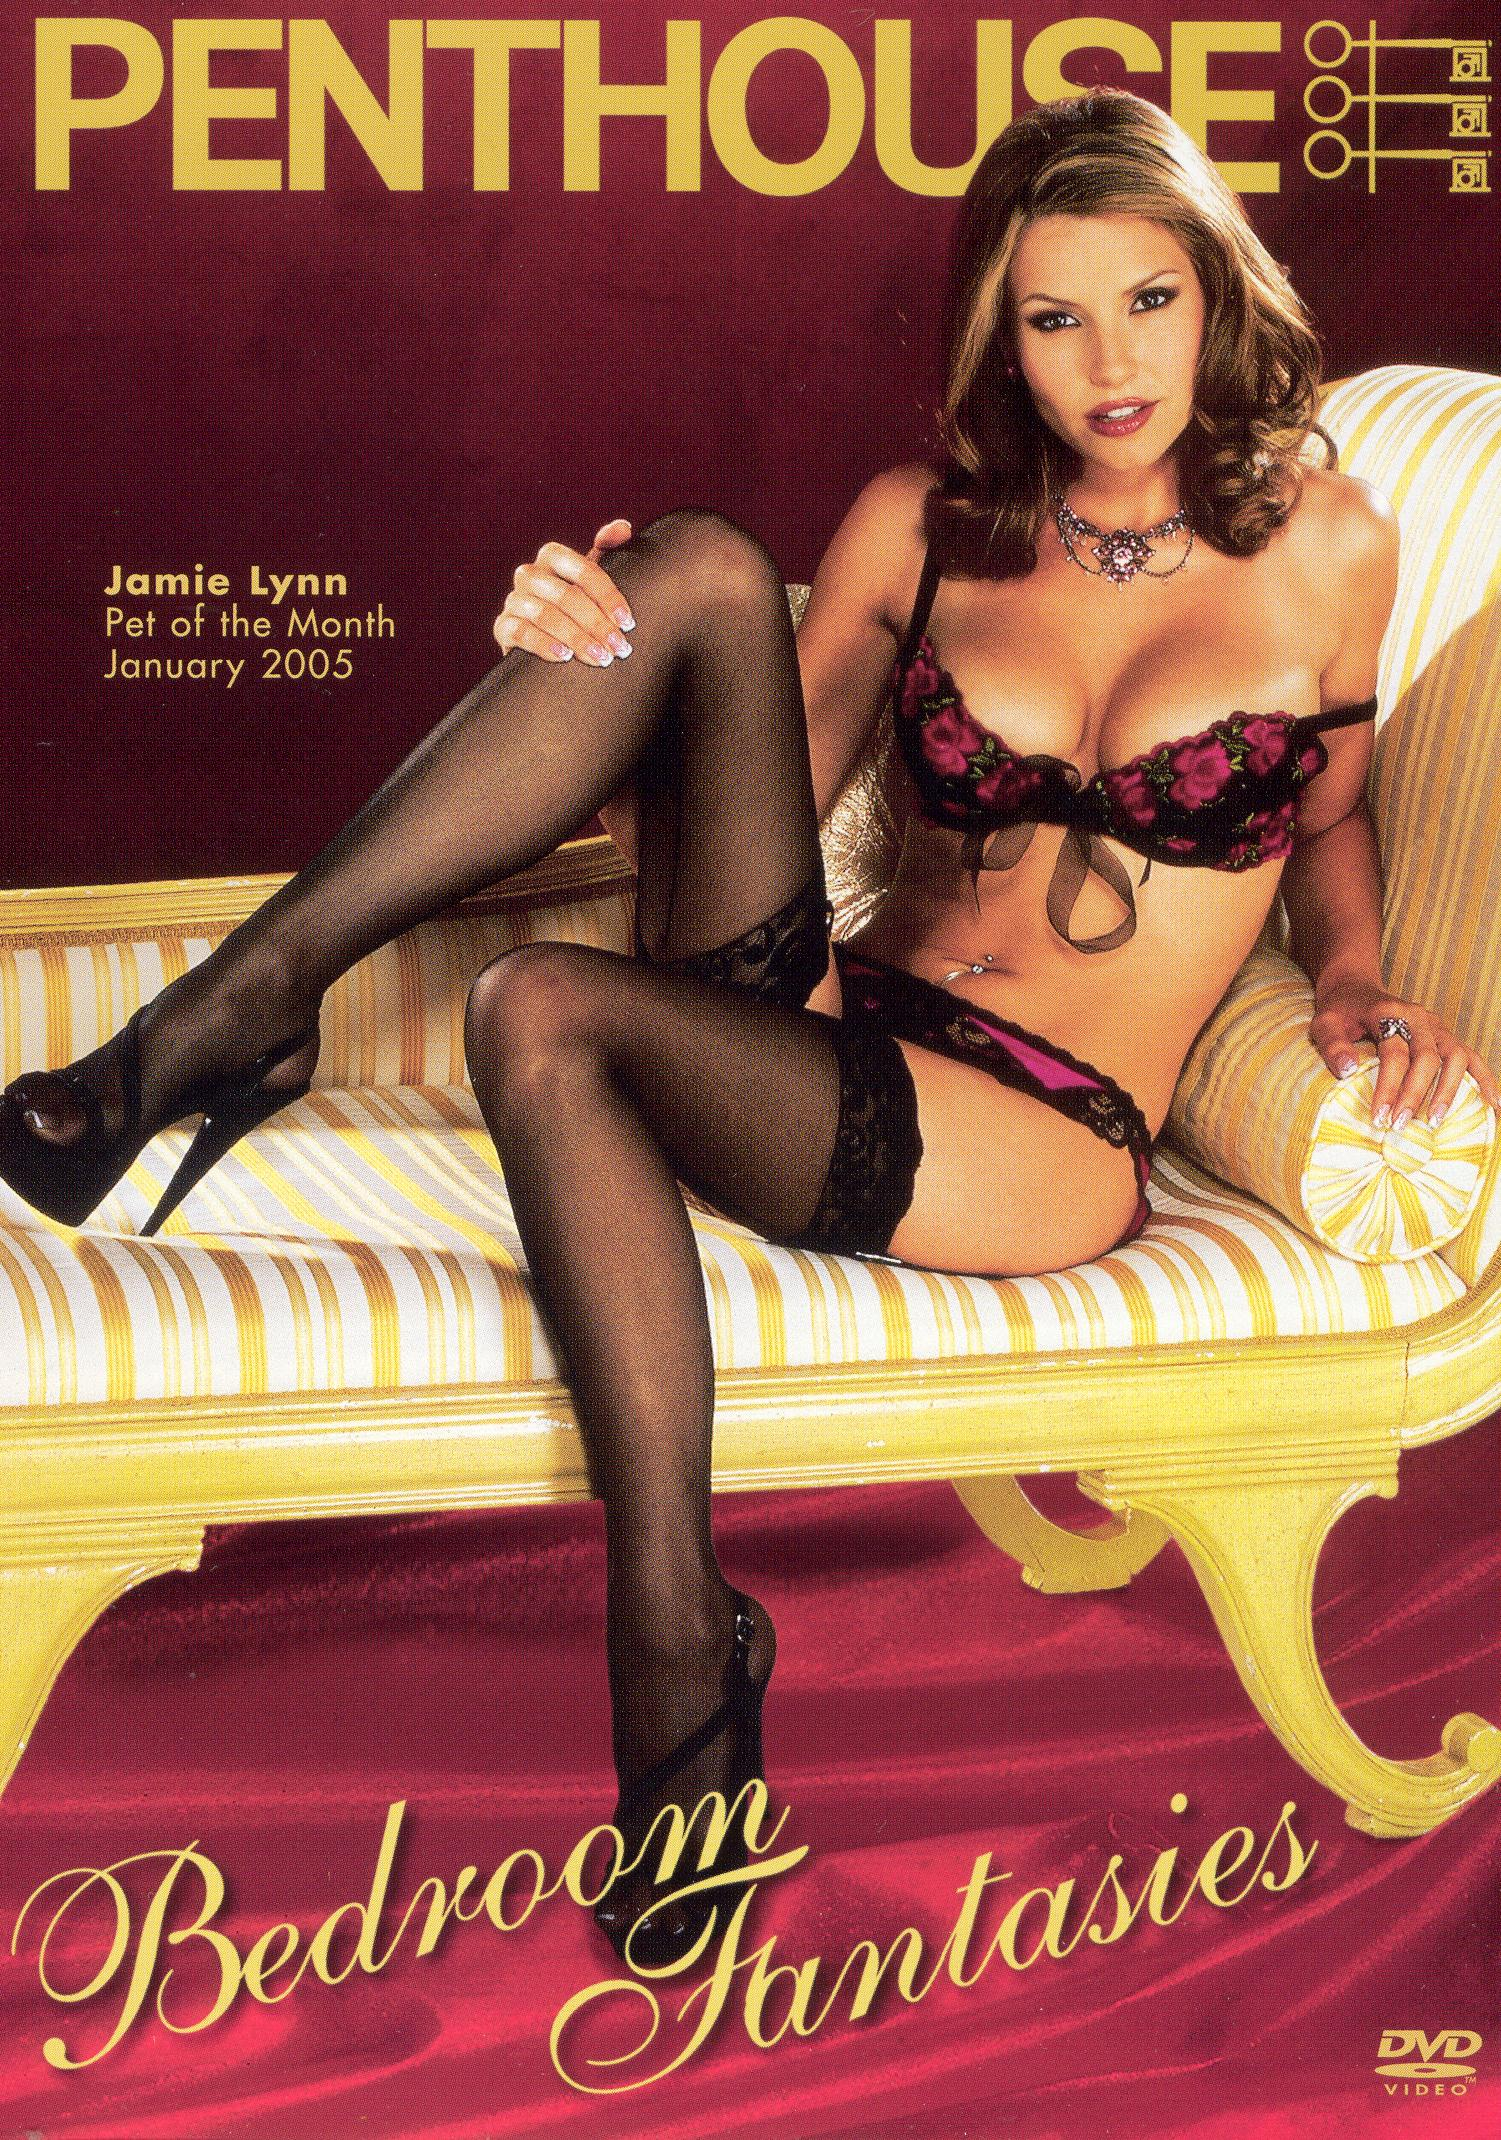 Penthouse Bedroom Fantasies 2005   Synopsis